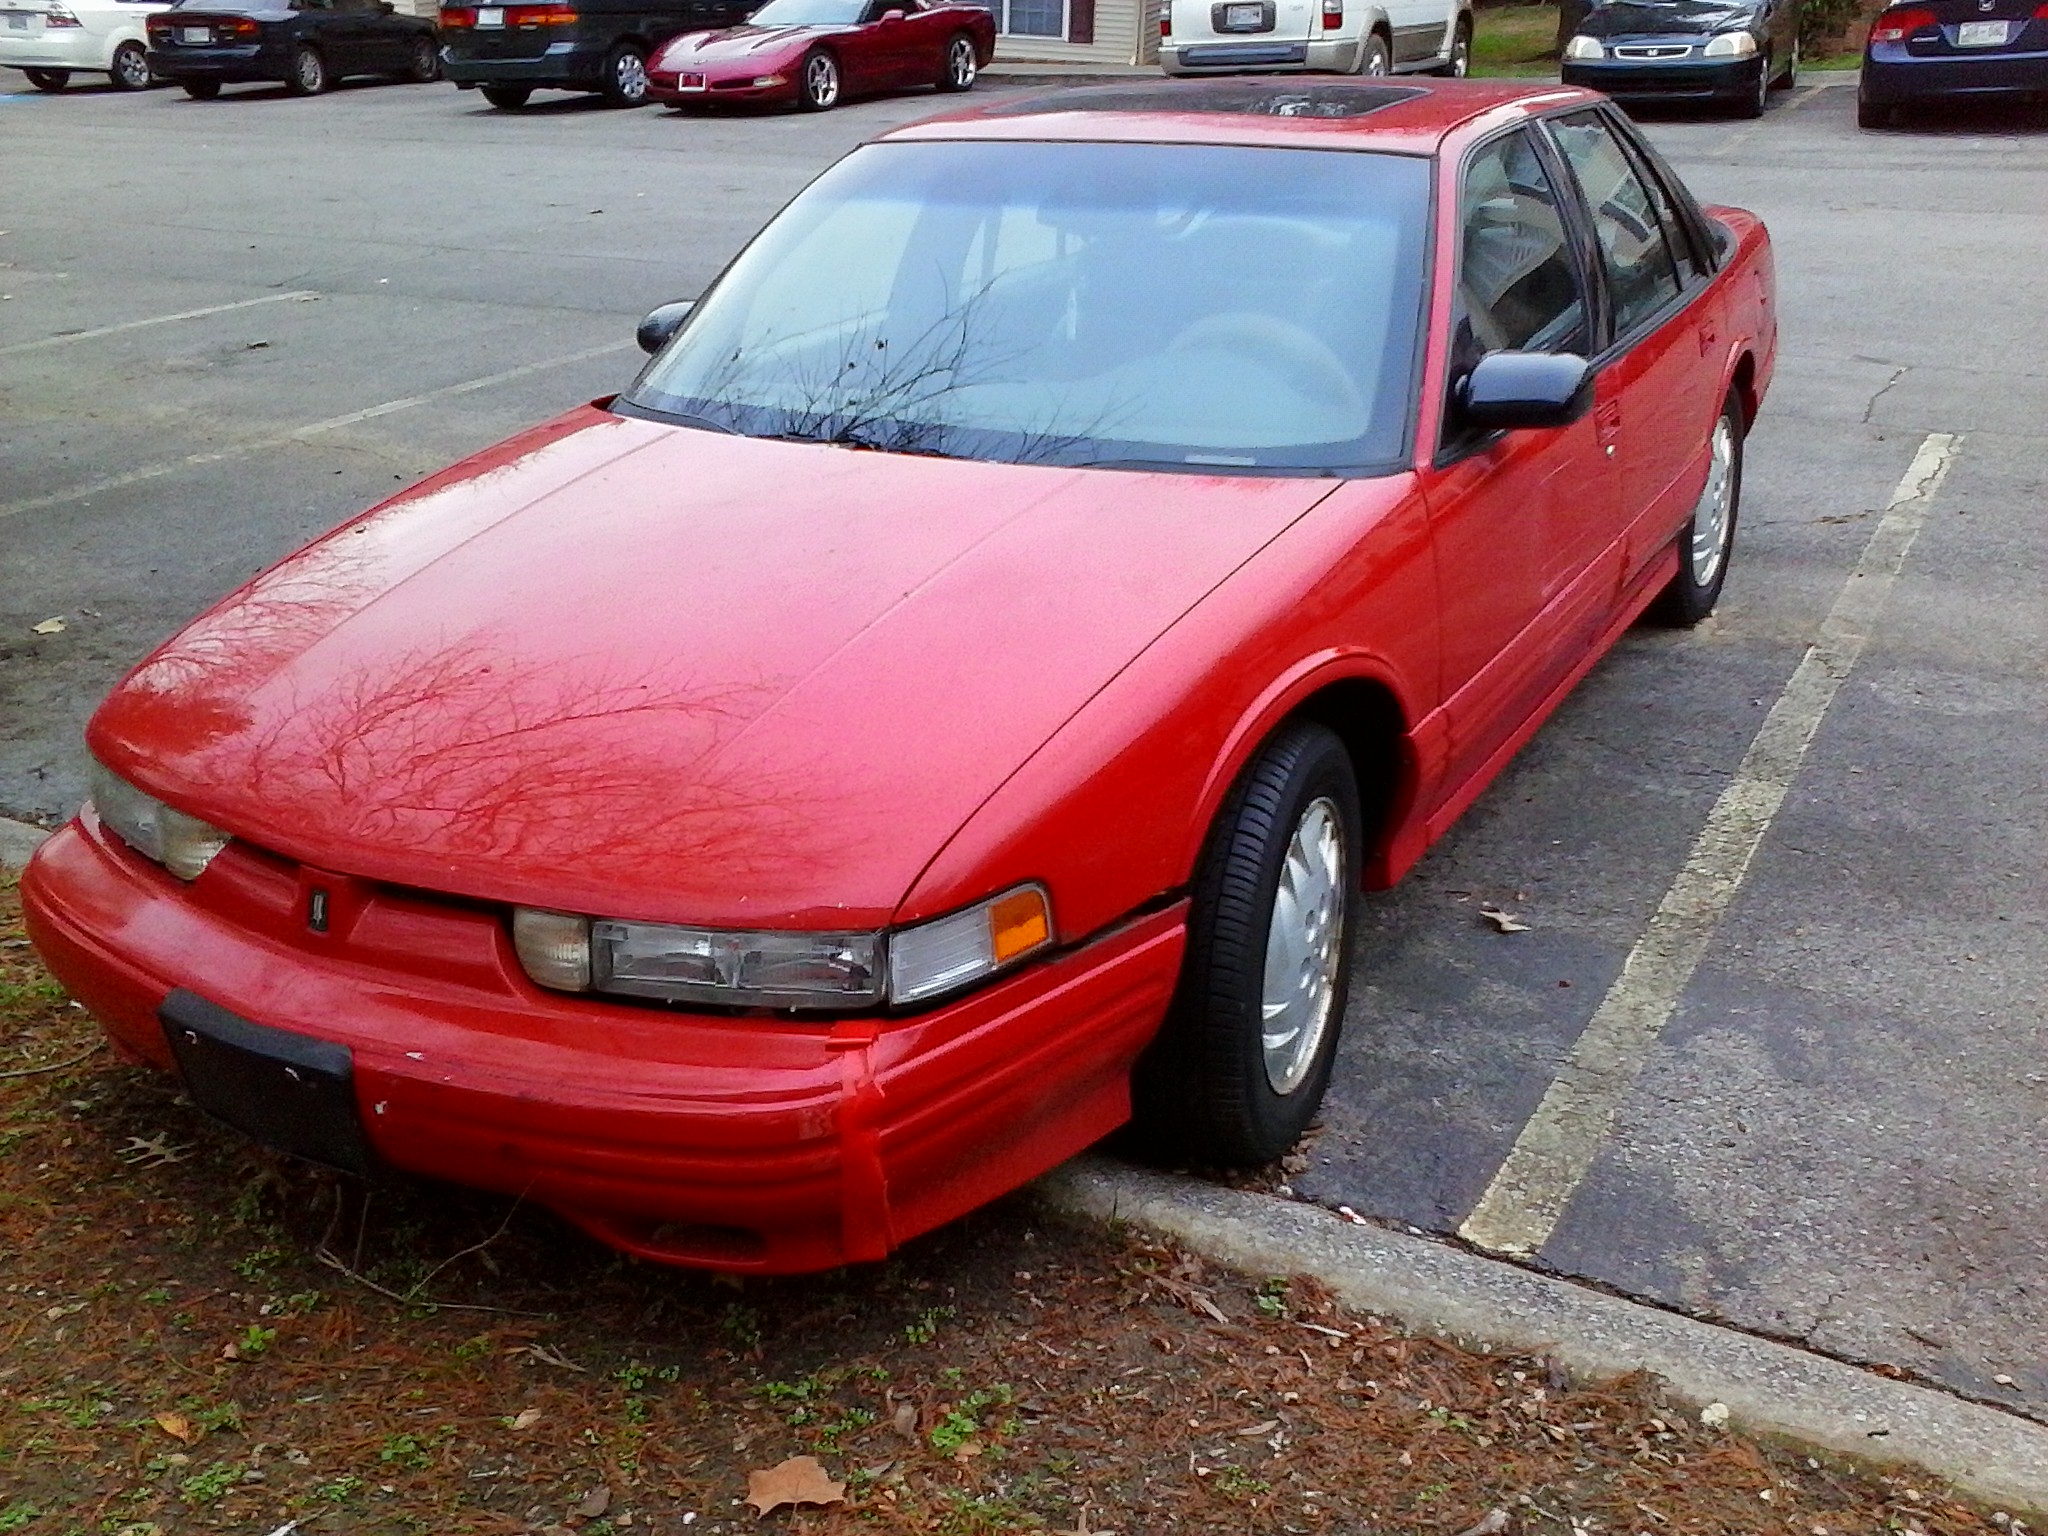 Cash for Cars Houston, TX | Sell Your Junk Car | The Clunker Junker